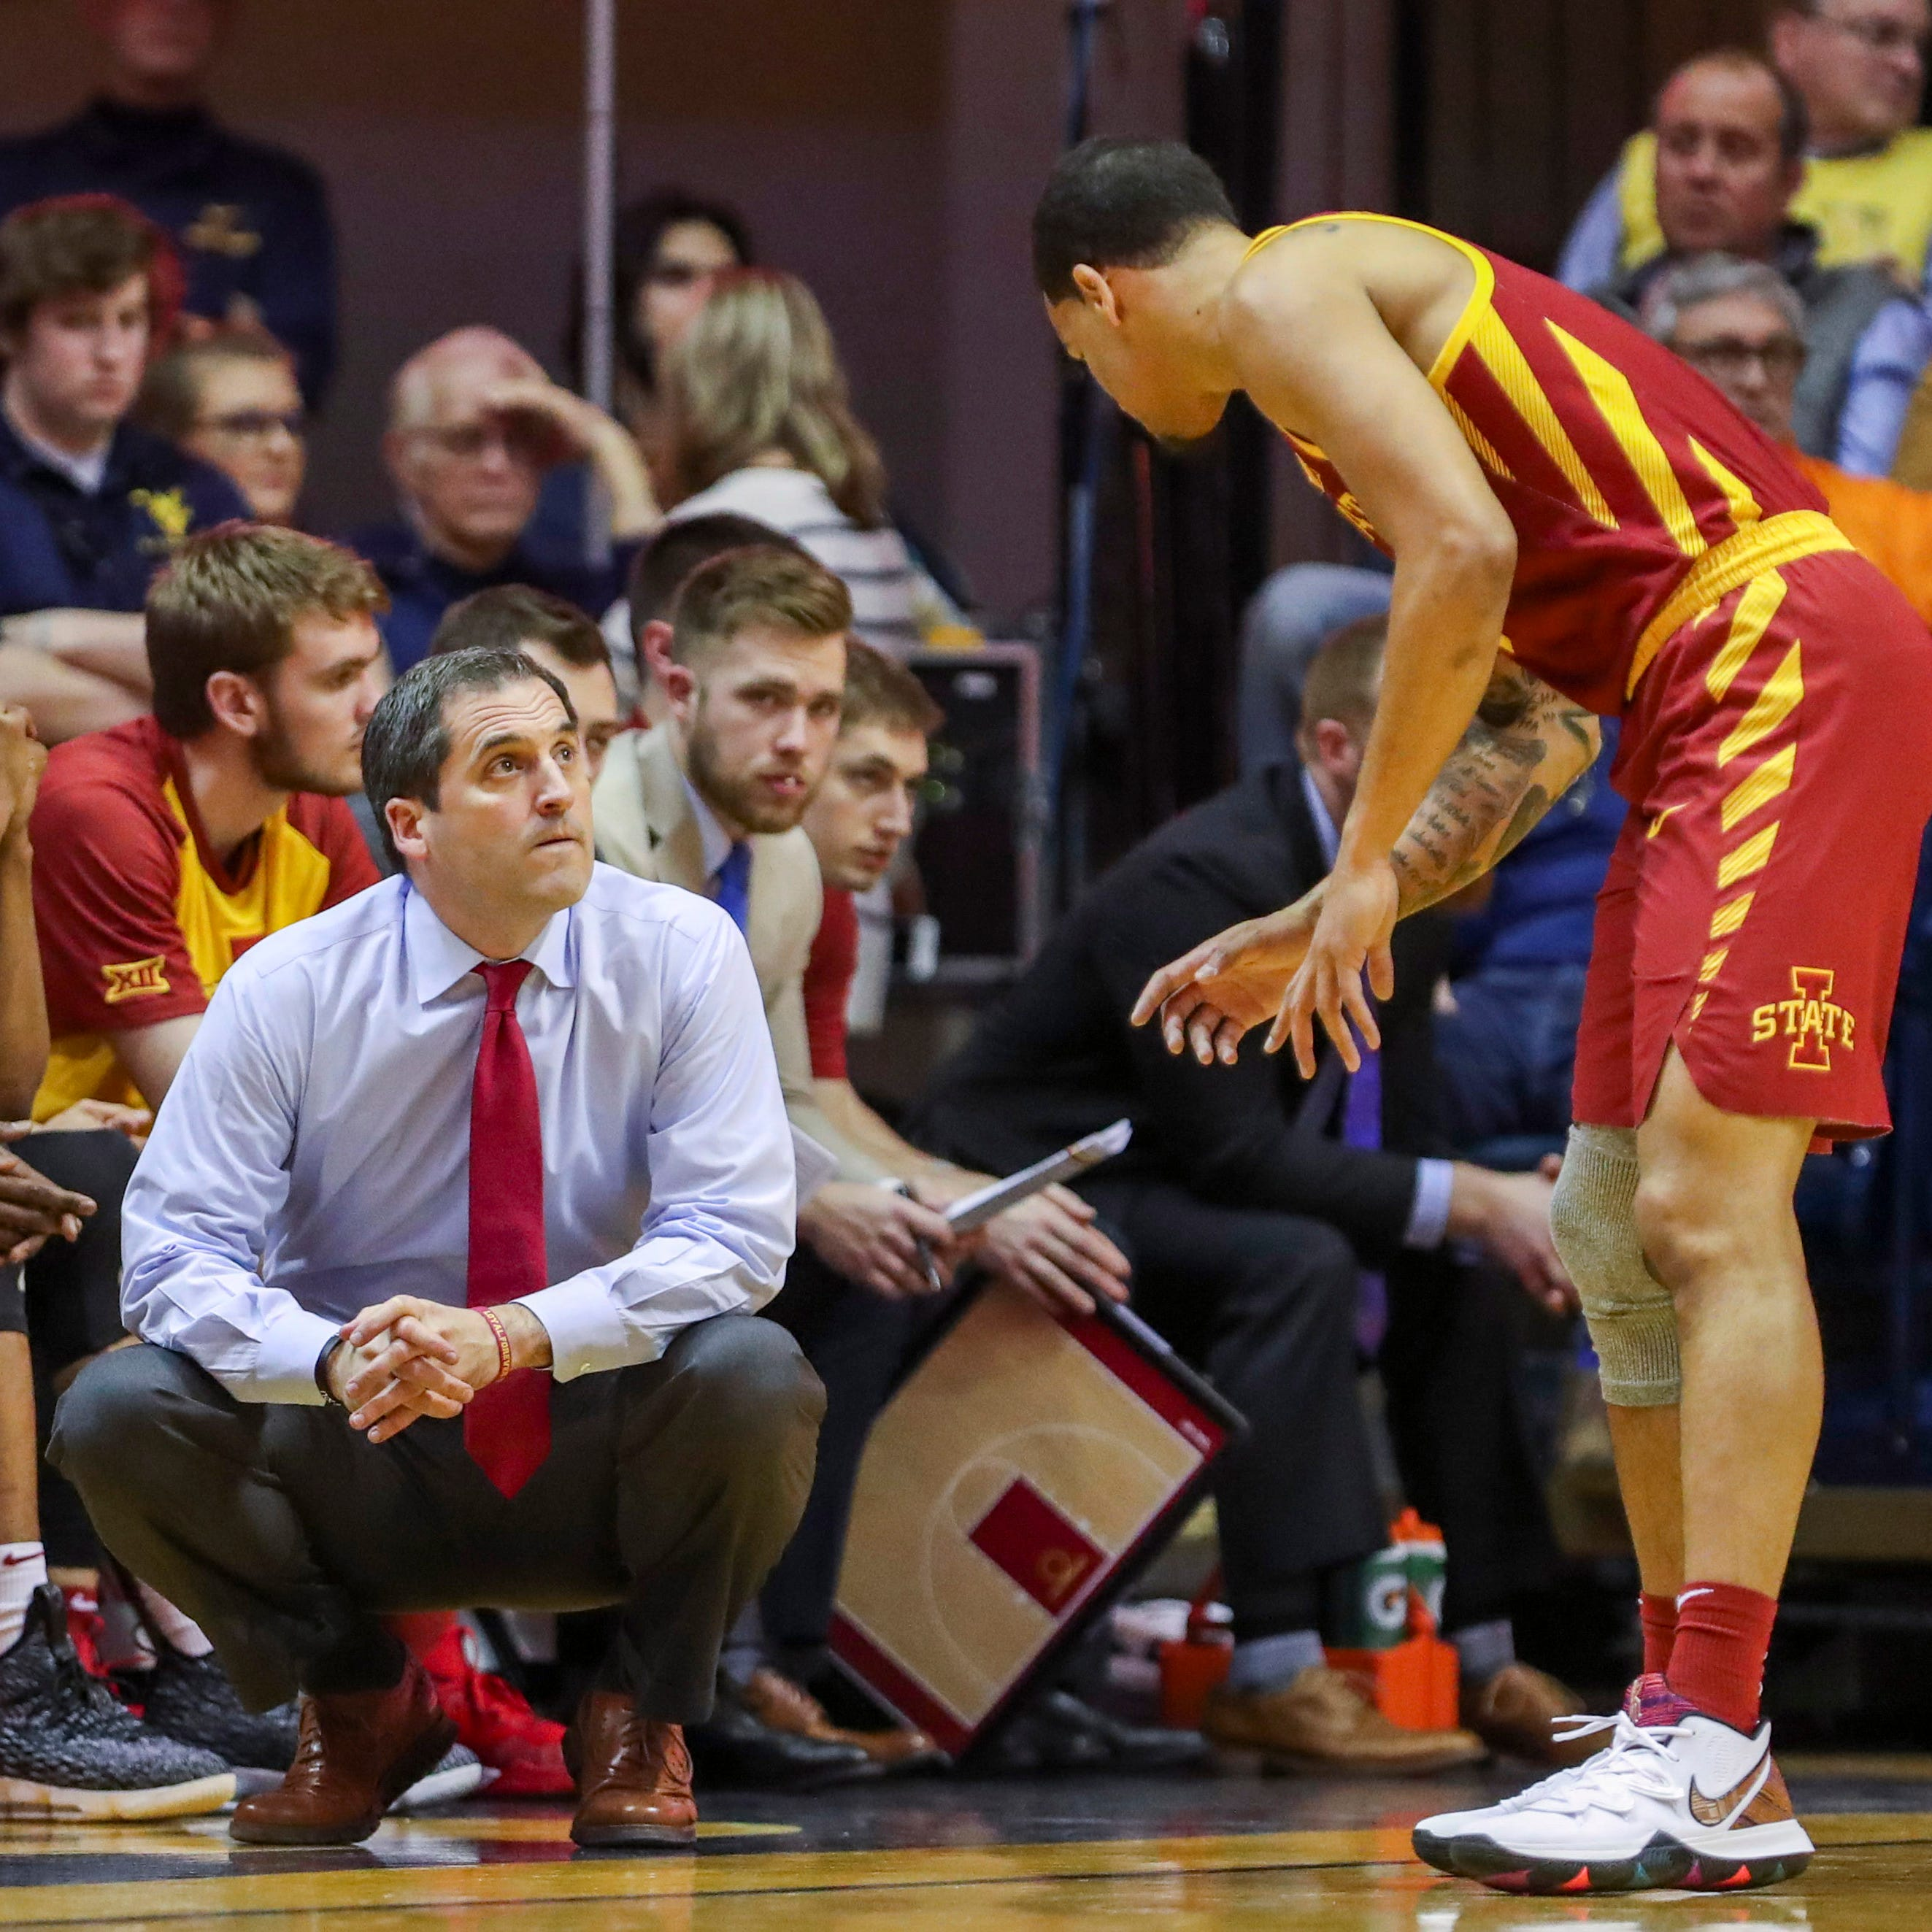 Peterson: Iowa State's Steve Prohm says he has 'a great relationship' with Fred Hoiberg